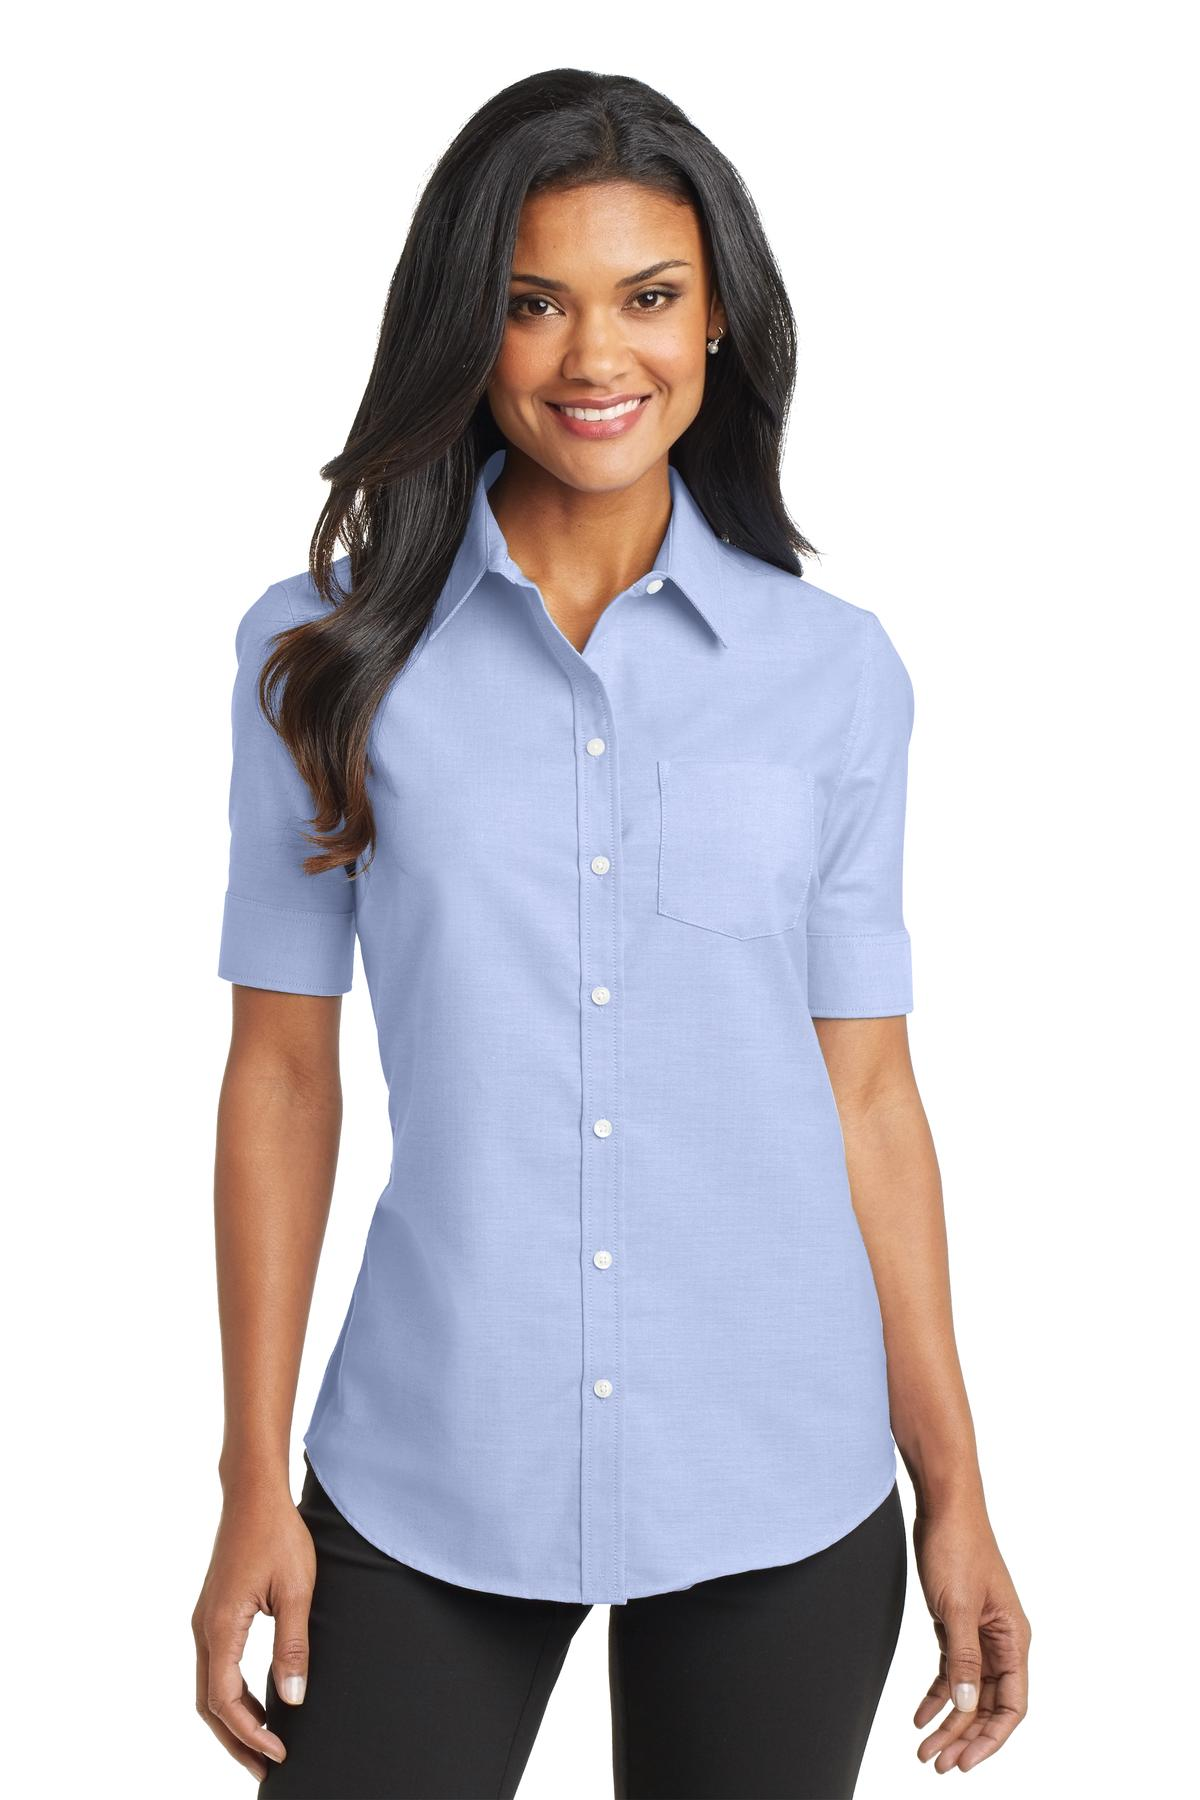 Polo Shirts For Women. There are many amazing styles to wear with polo shirts for women. Try on a yellow polo shirt over floral printed tights and boots, or layer it over a .